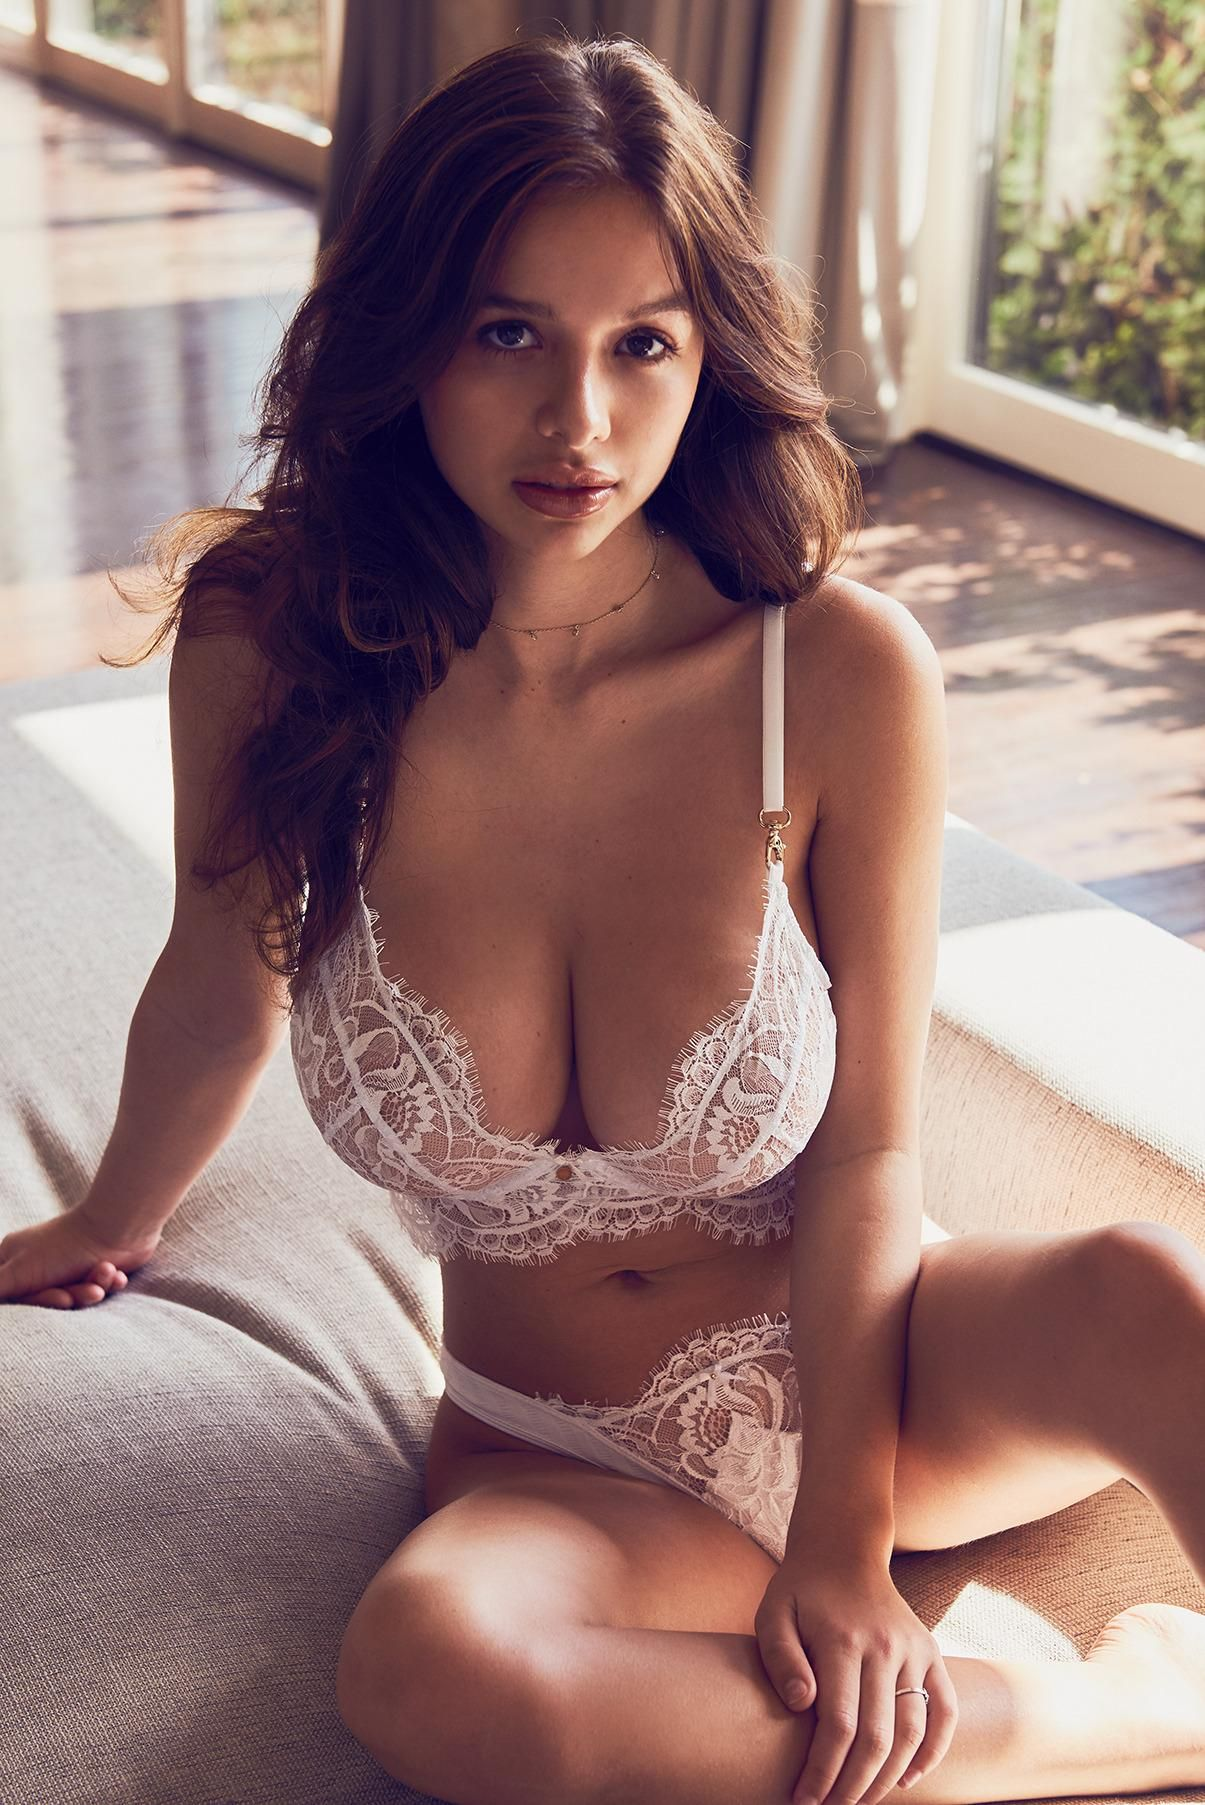 Sophie mudd see through nudes (25 images)